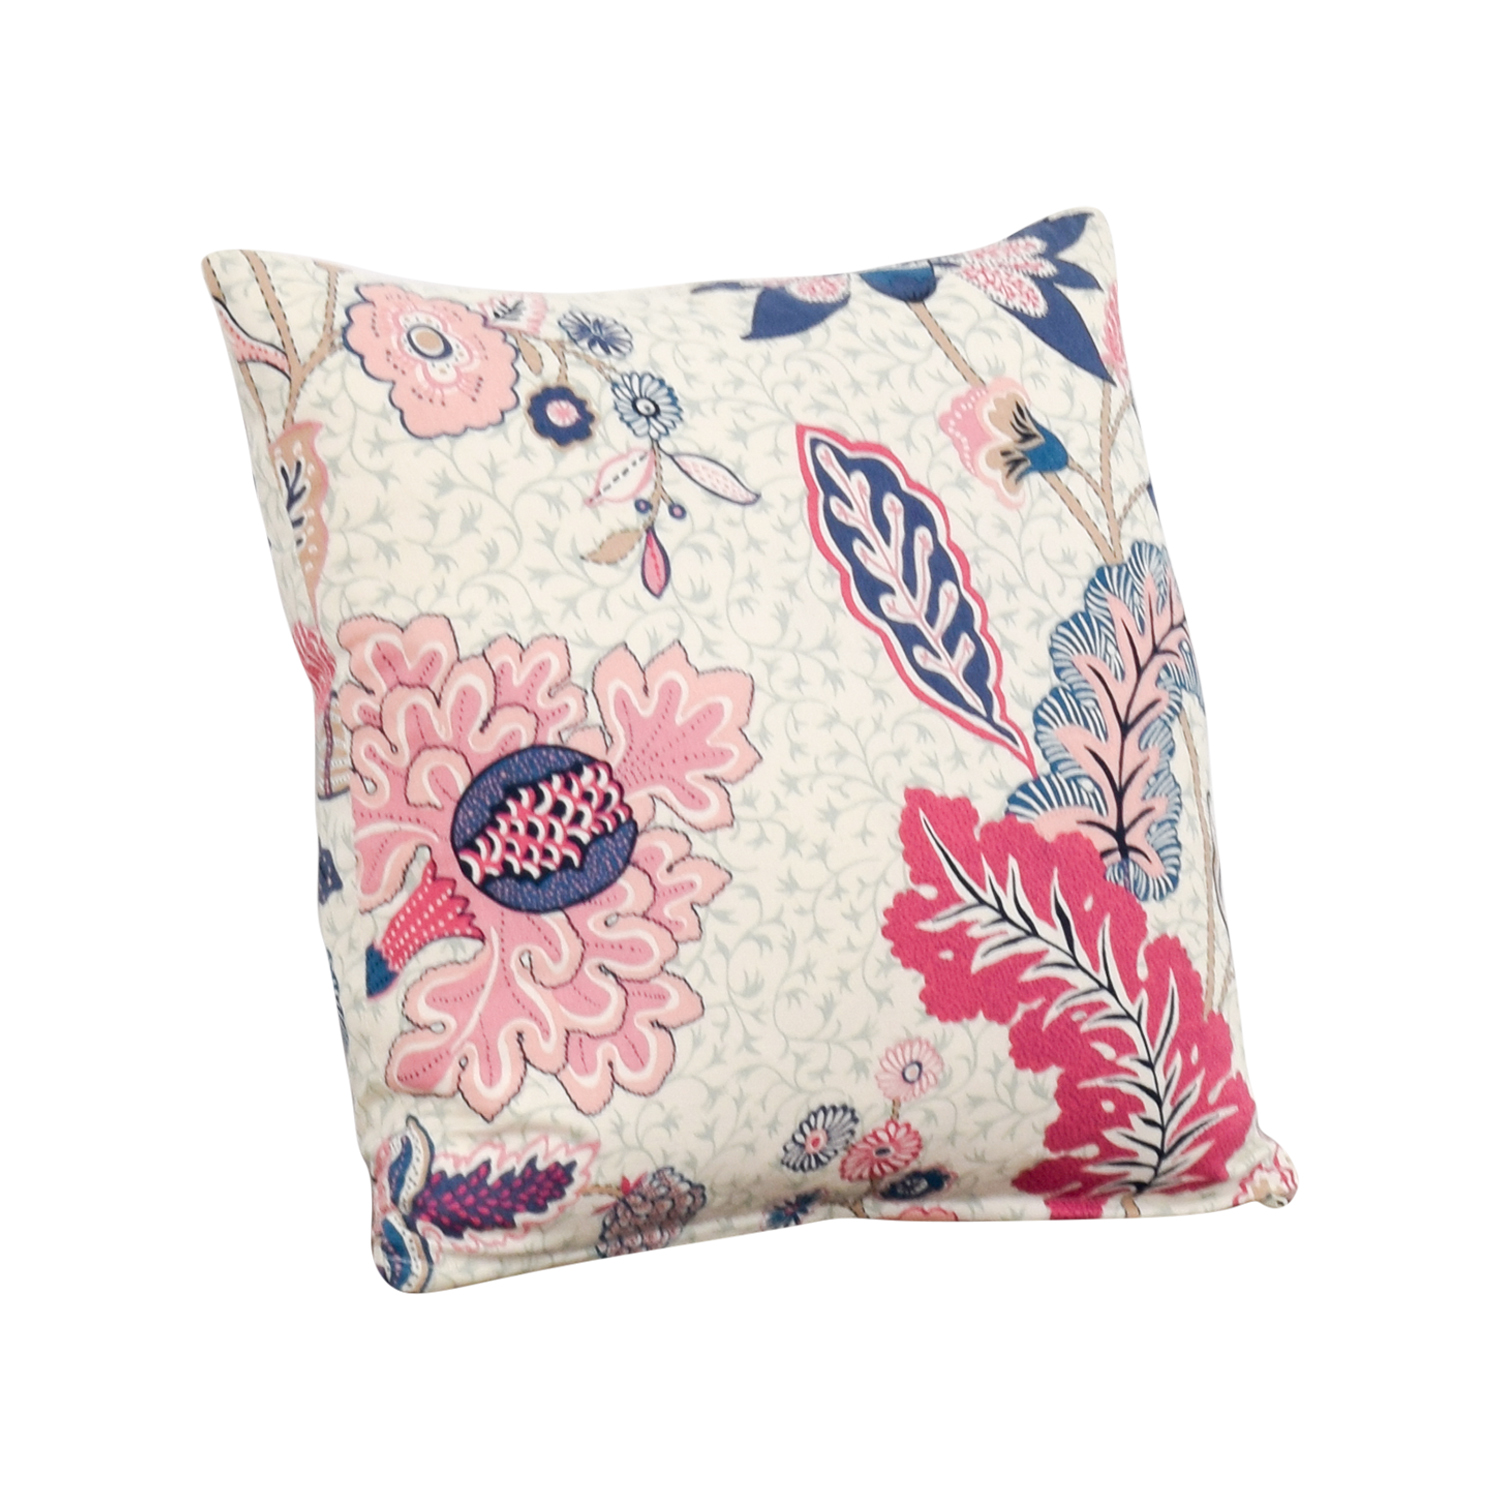 Society Social Society Social Blue and Pink Pattern Pillow used